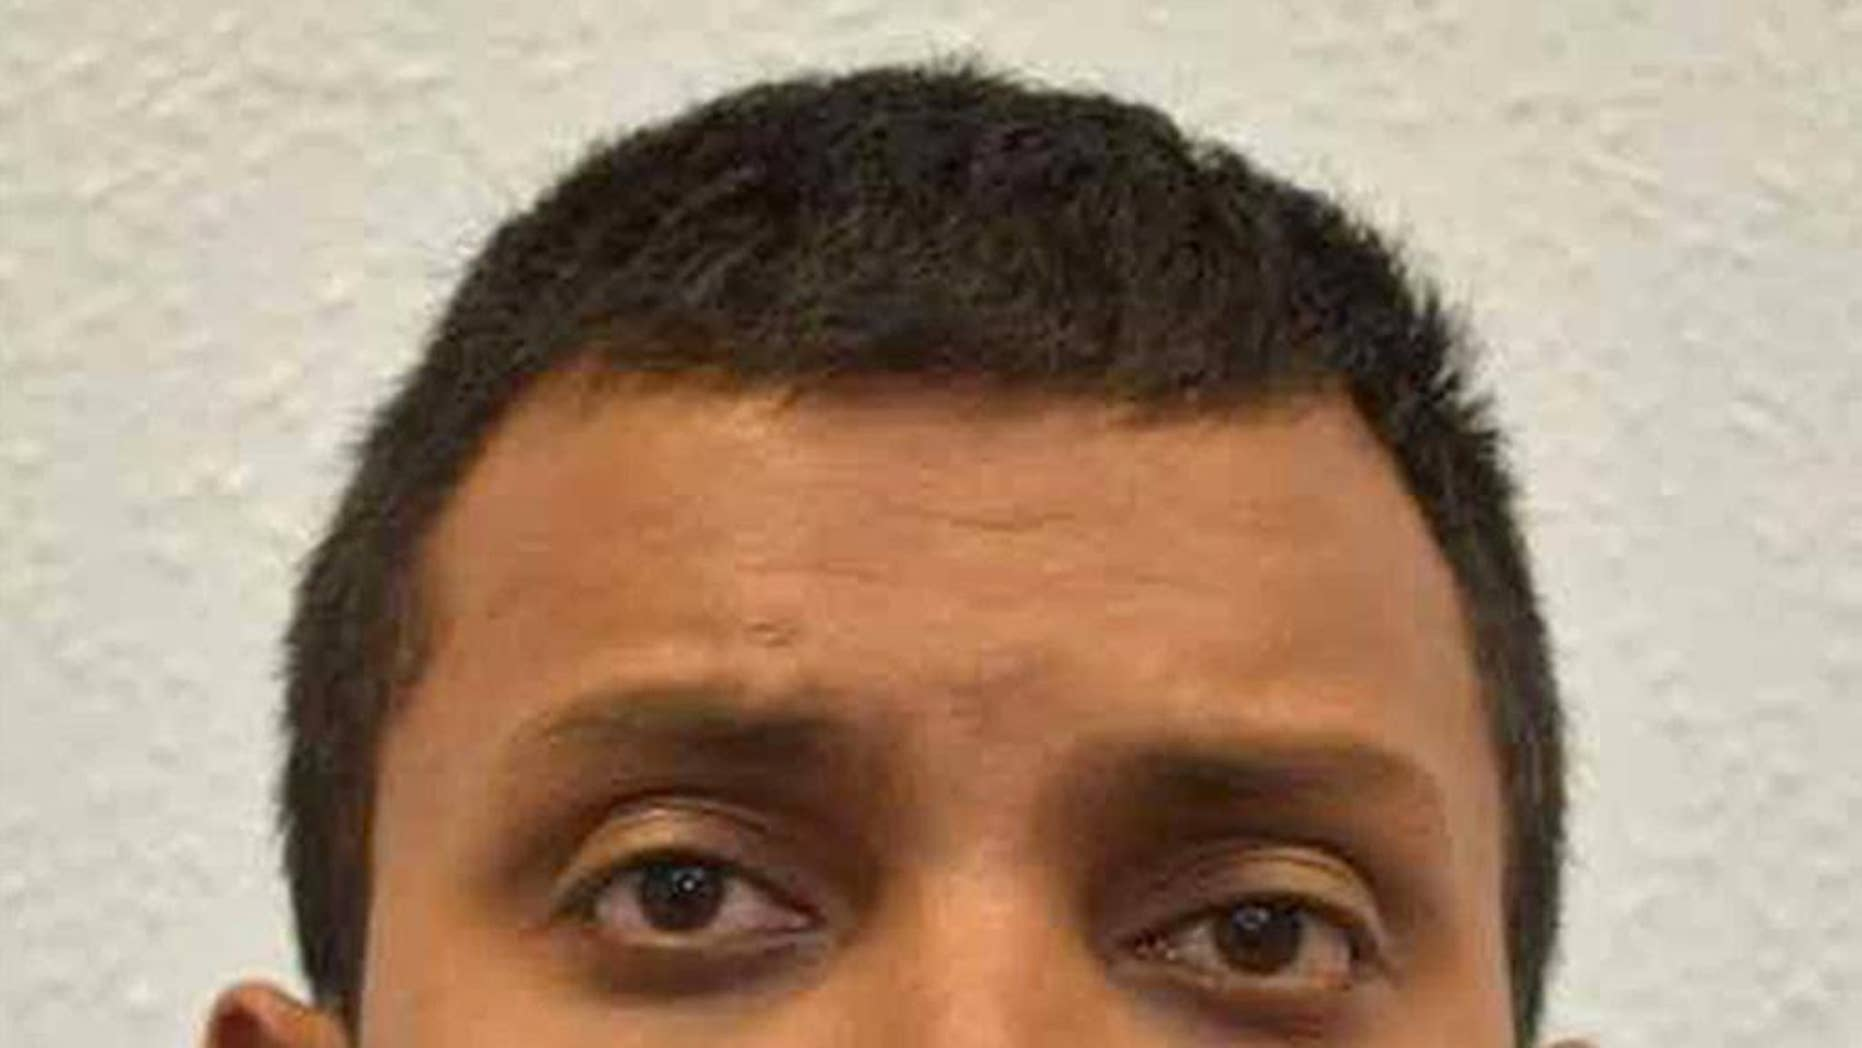 Crown Prosecution Service undated handout photo made available Friday April 1, 2016  of delivery driver Junead Khan, 25, from Luton England.